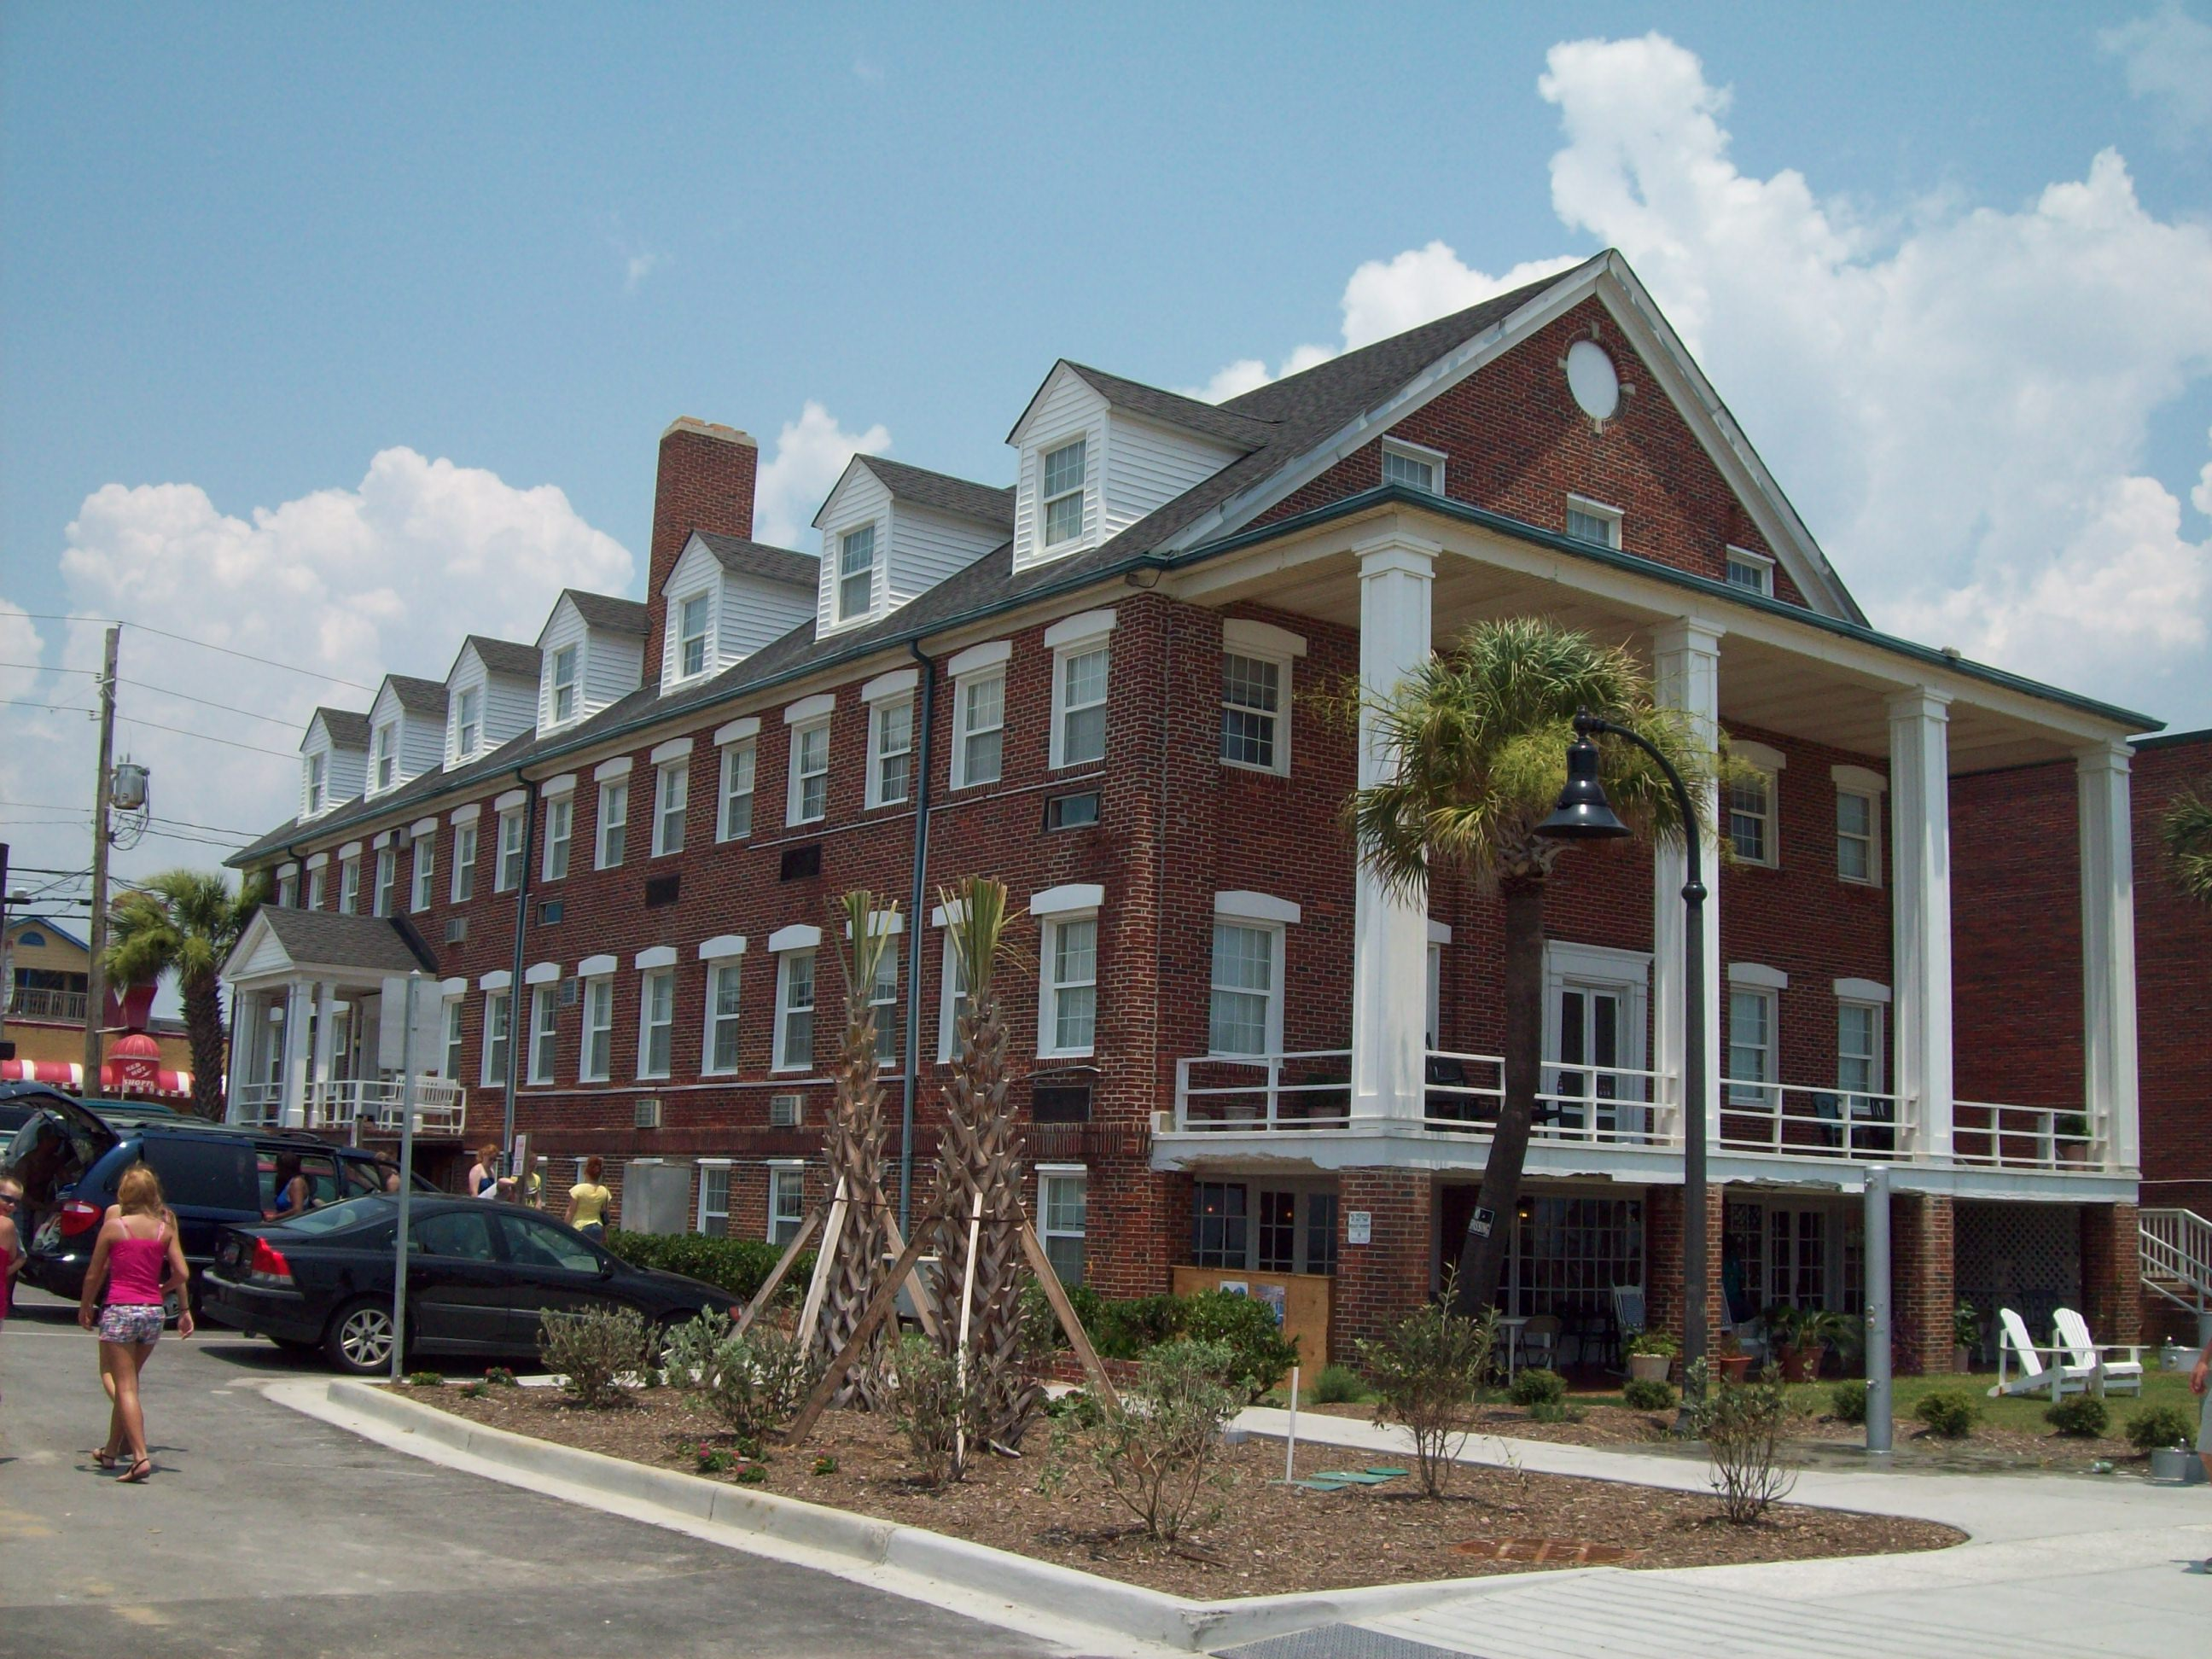 Myrtle Beach Historic Hotels